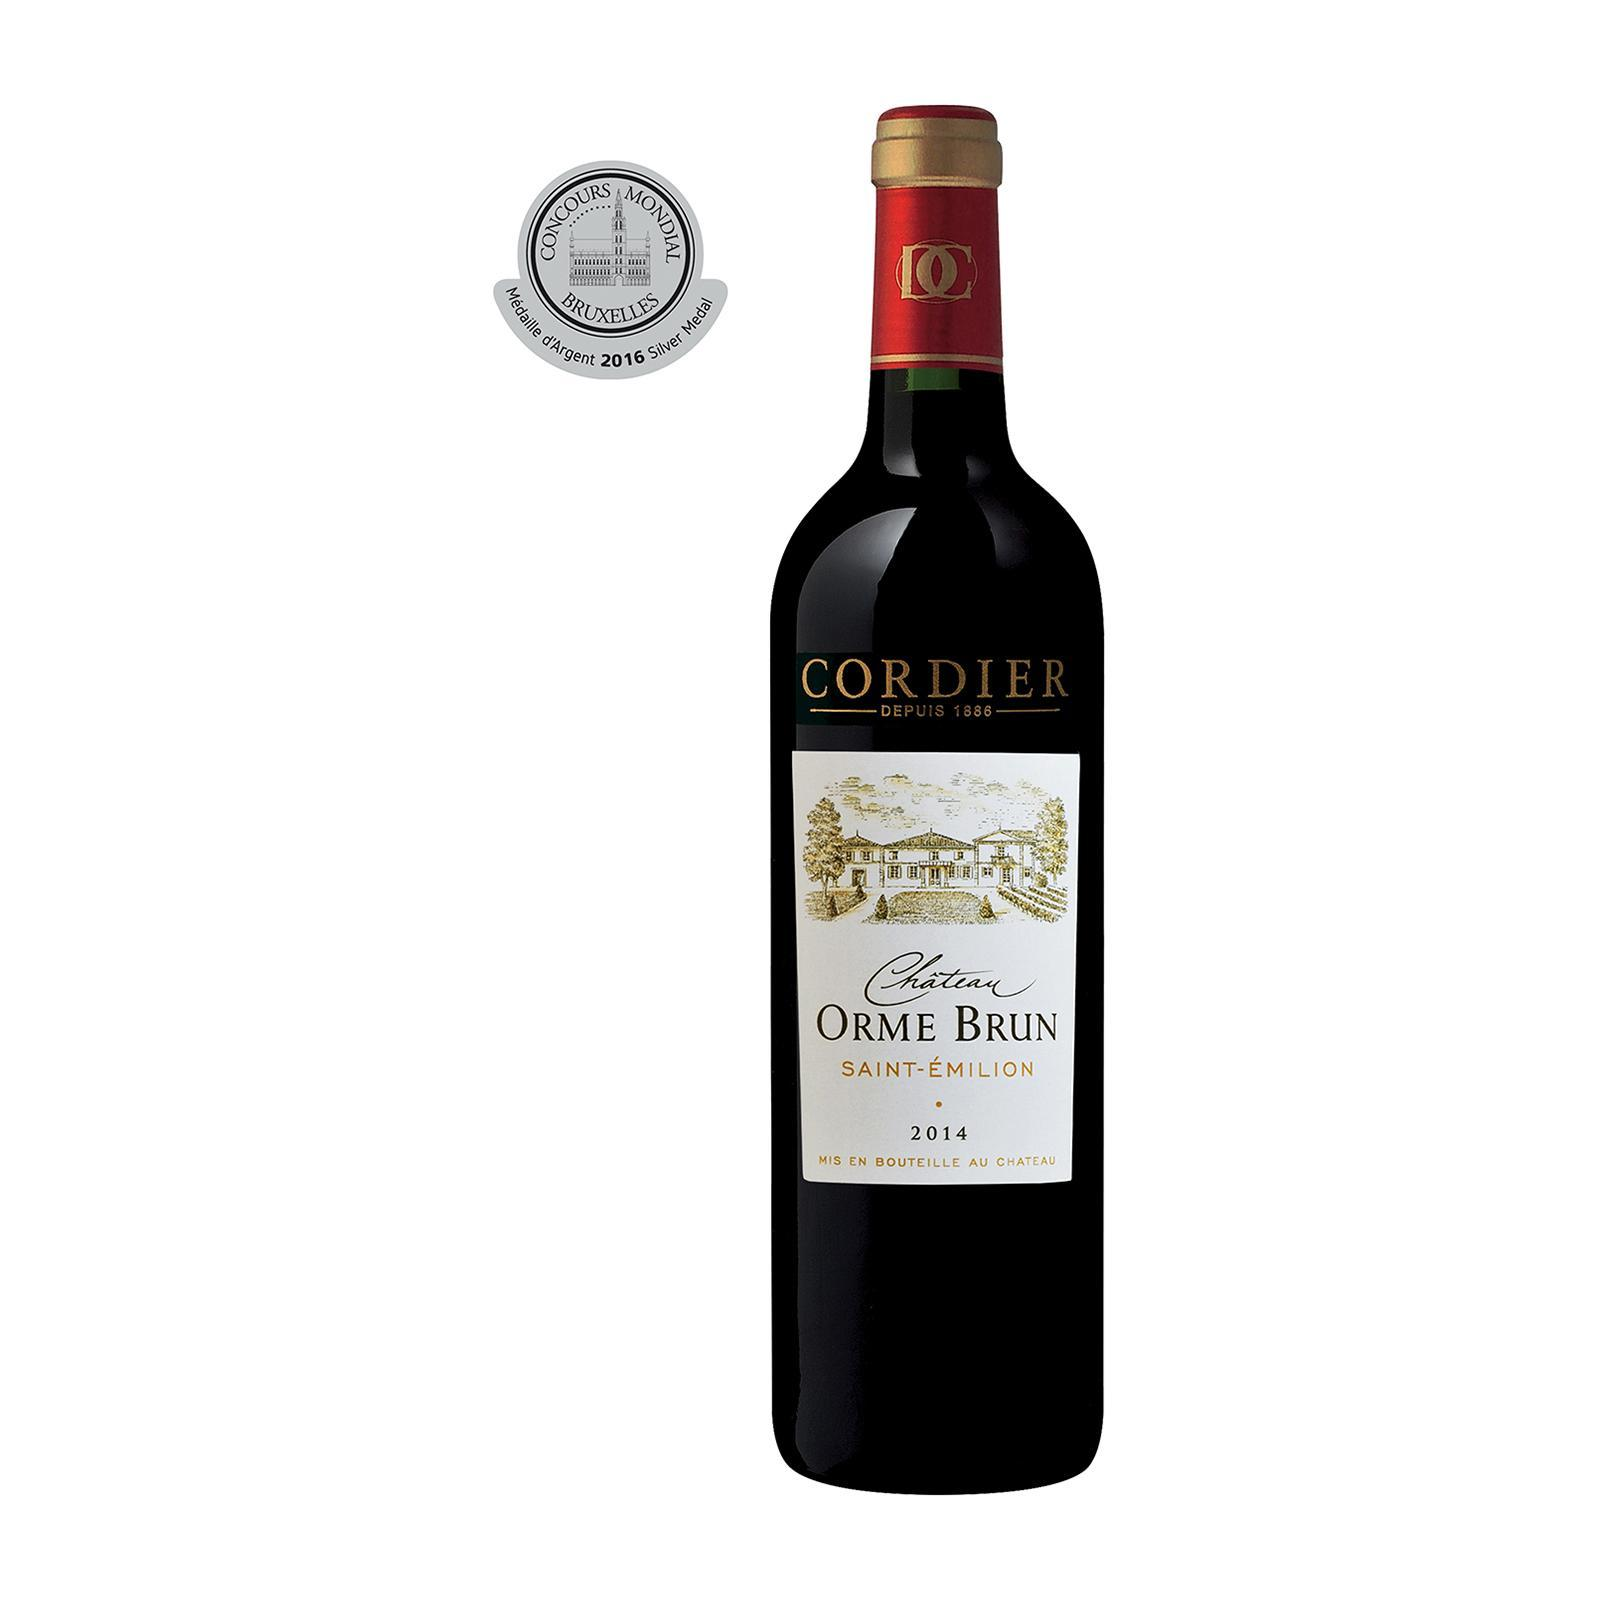 Chateau Orme Brune Saint-Emilion - By Wines4you